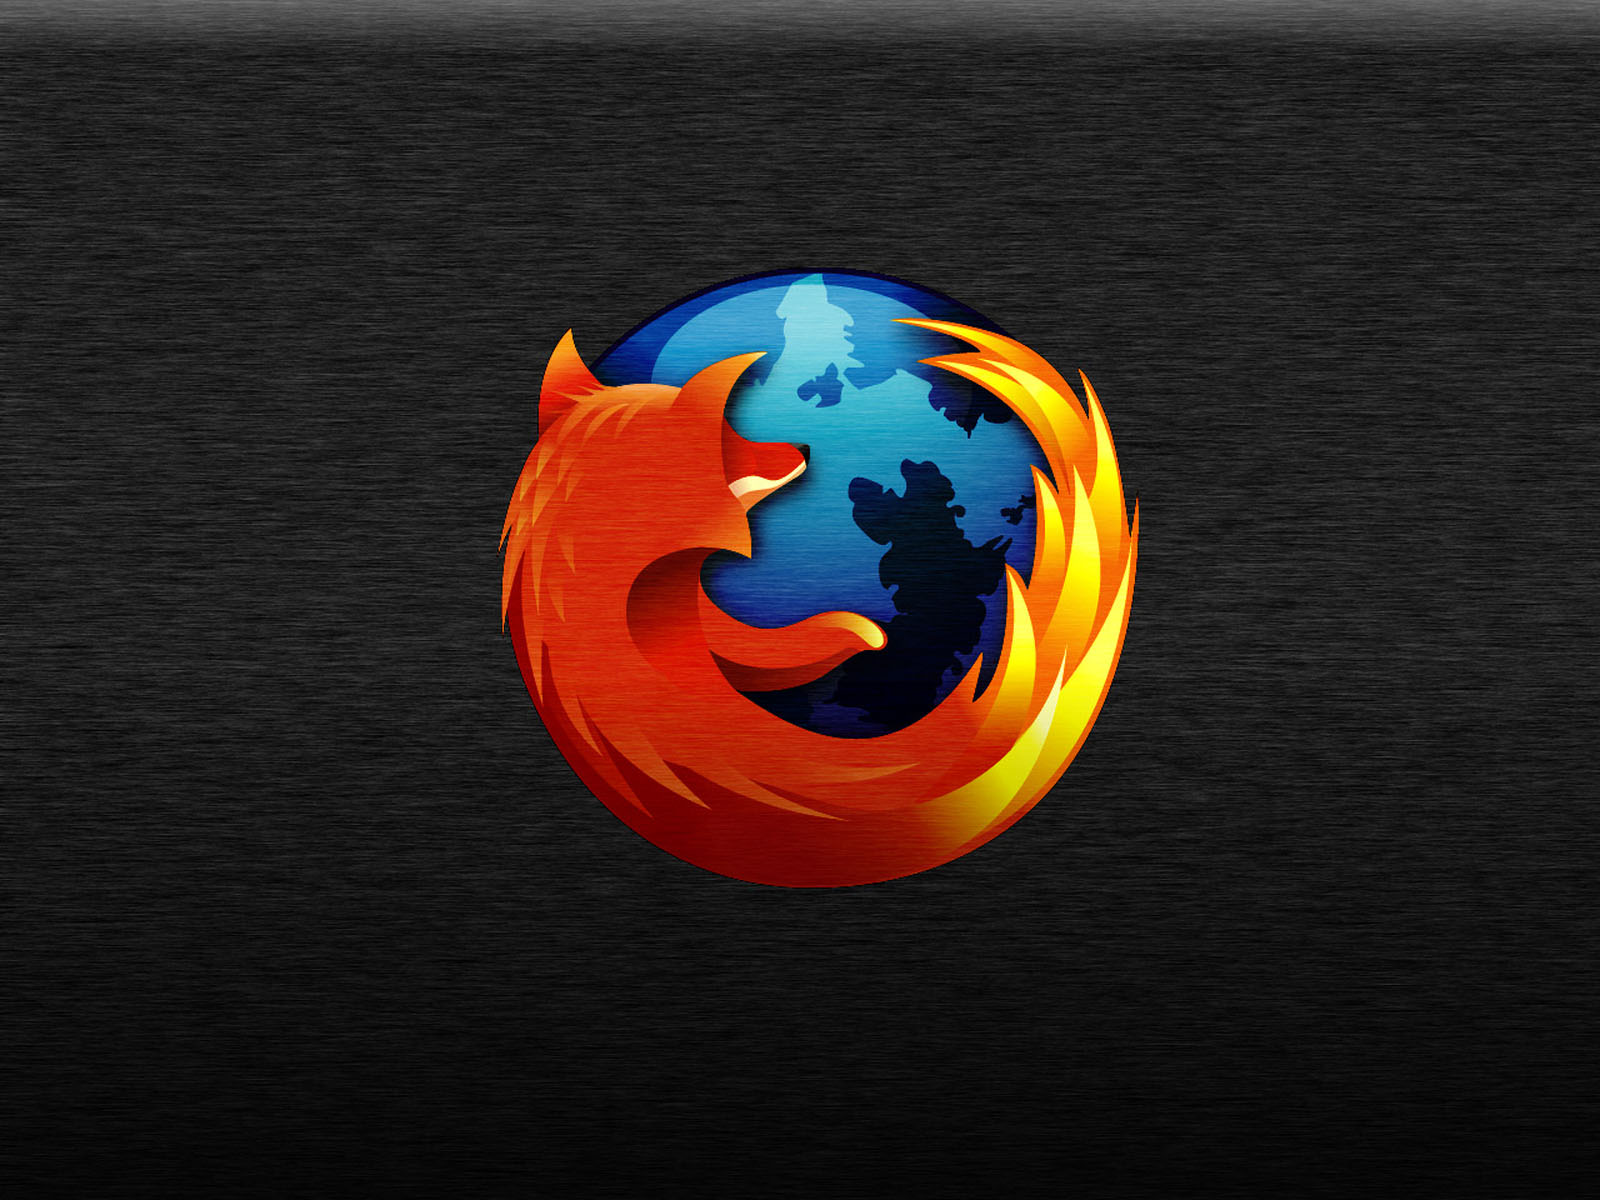 wallpapers Firefox Wallpapers 1600x1200